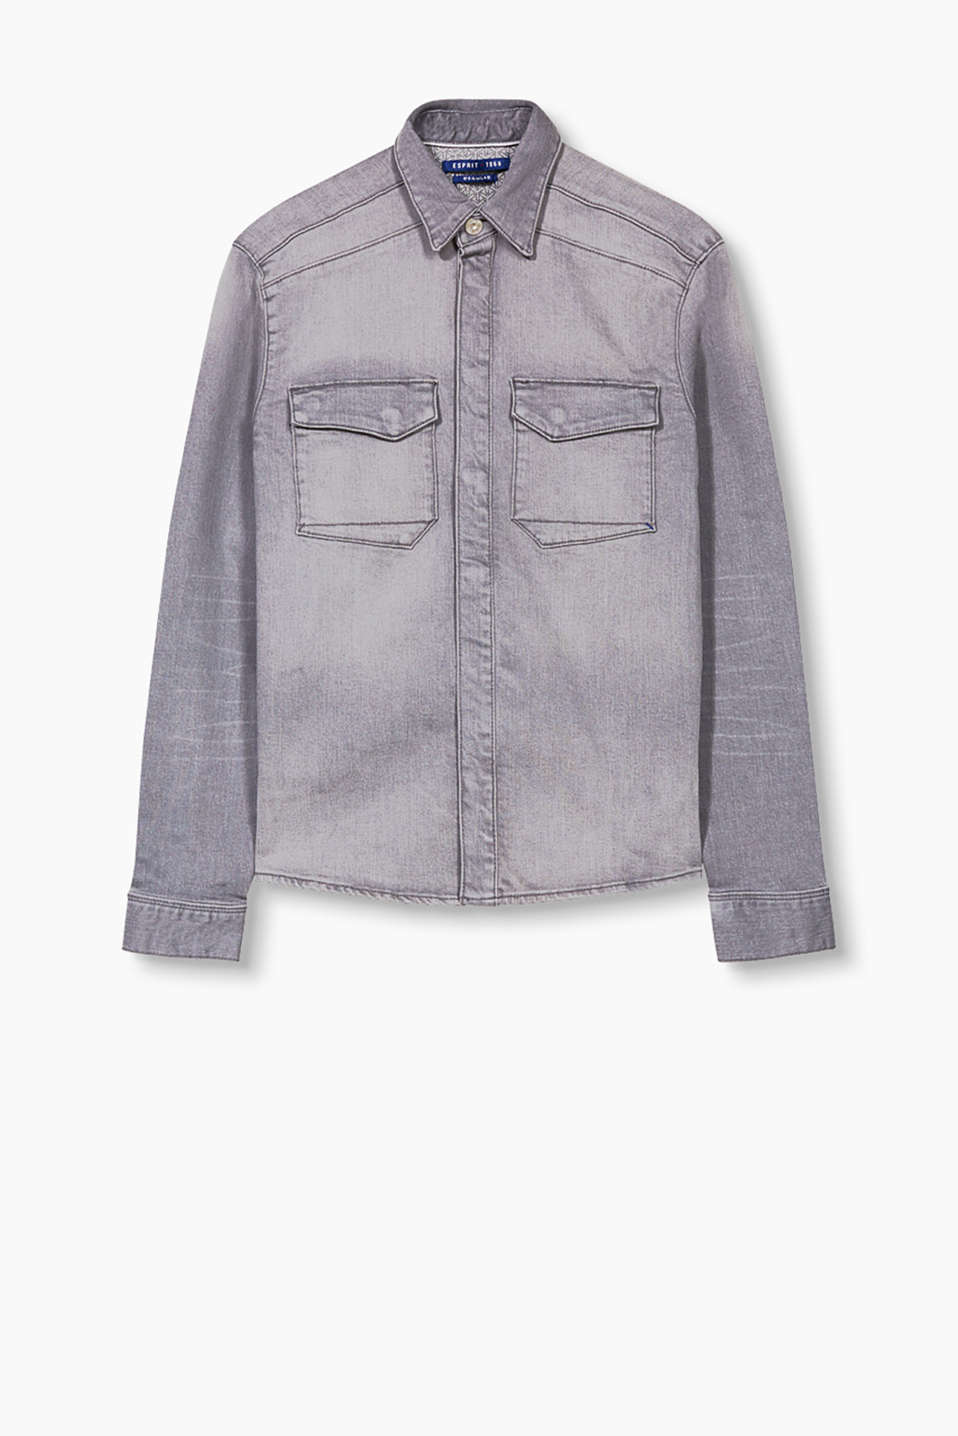 Shirt or jacket substitute: robust denim shirt with a fly front and authentic washed effects